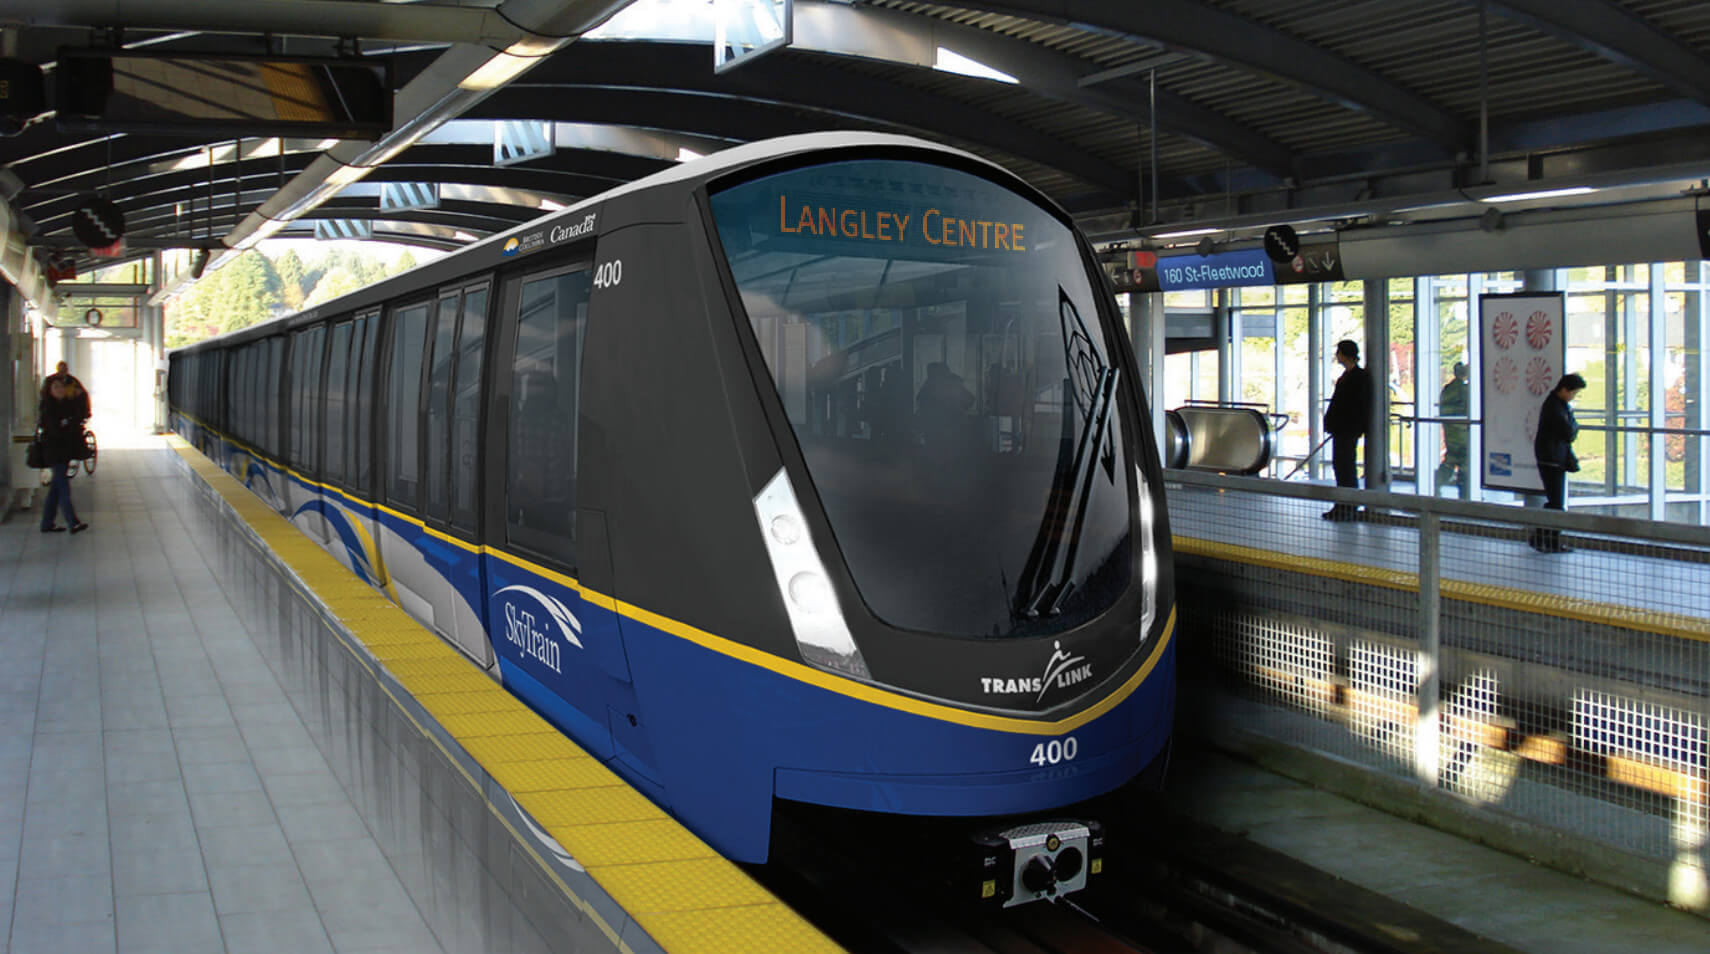 SkyTrain for Surrey, not LRT!